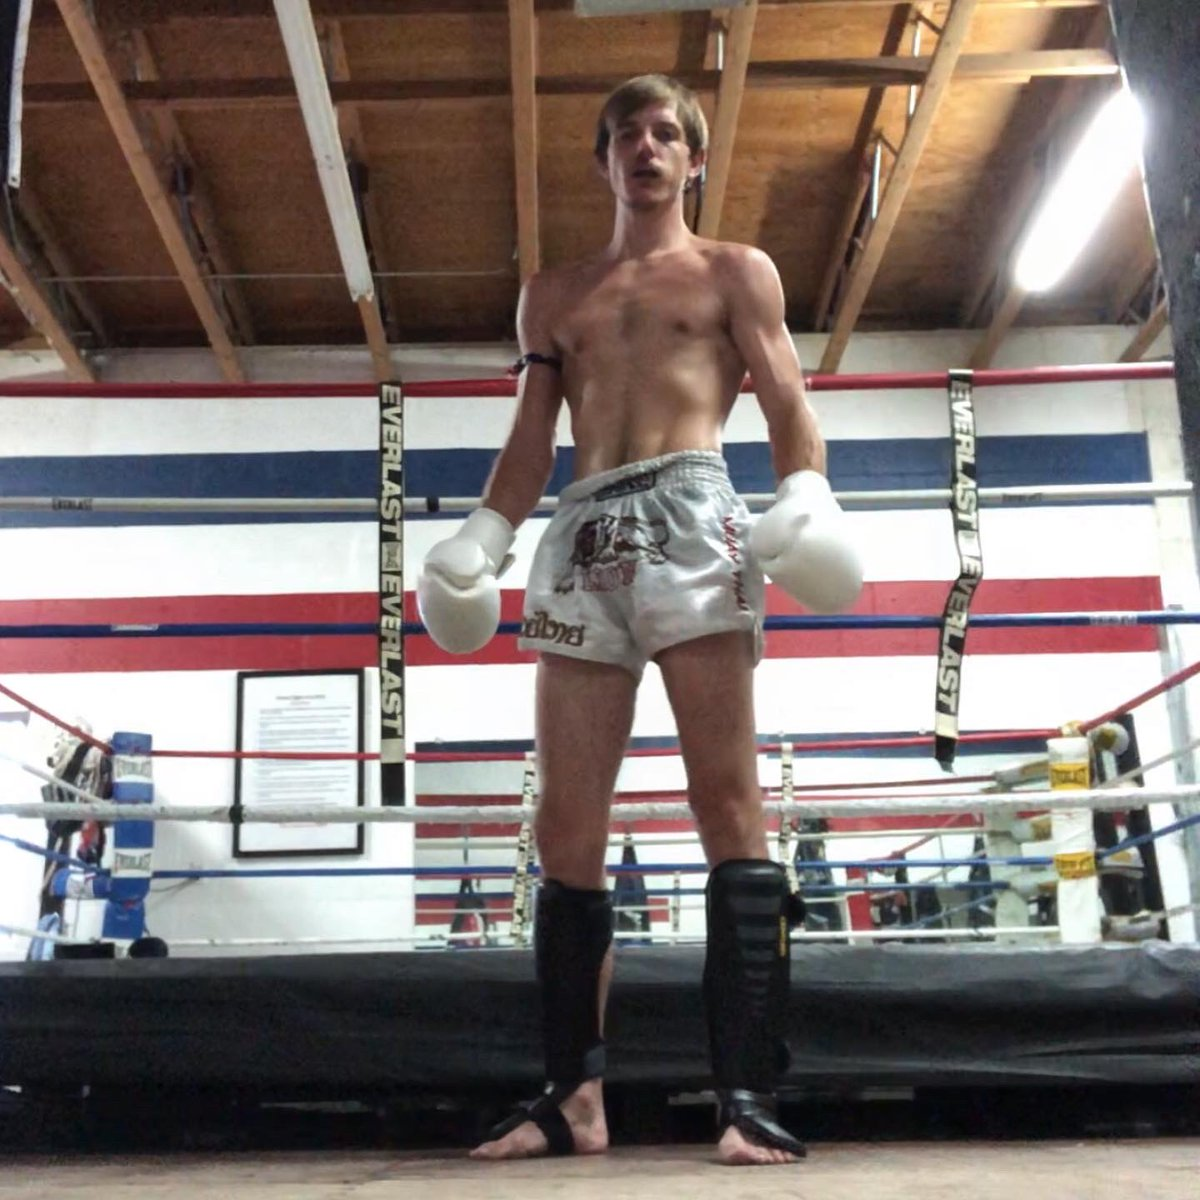 """Your focus determines your reality."" -Qui-Gon Jinn #Starwars #Jedi #QuiGonJinn #MuayThai https://t.co/NnTdQeqWVG"